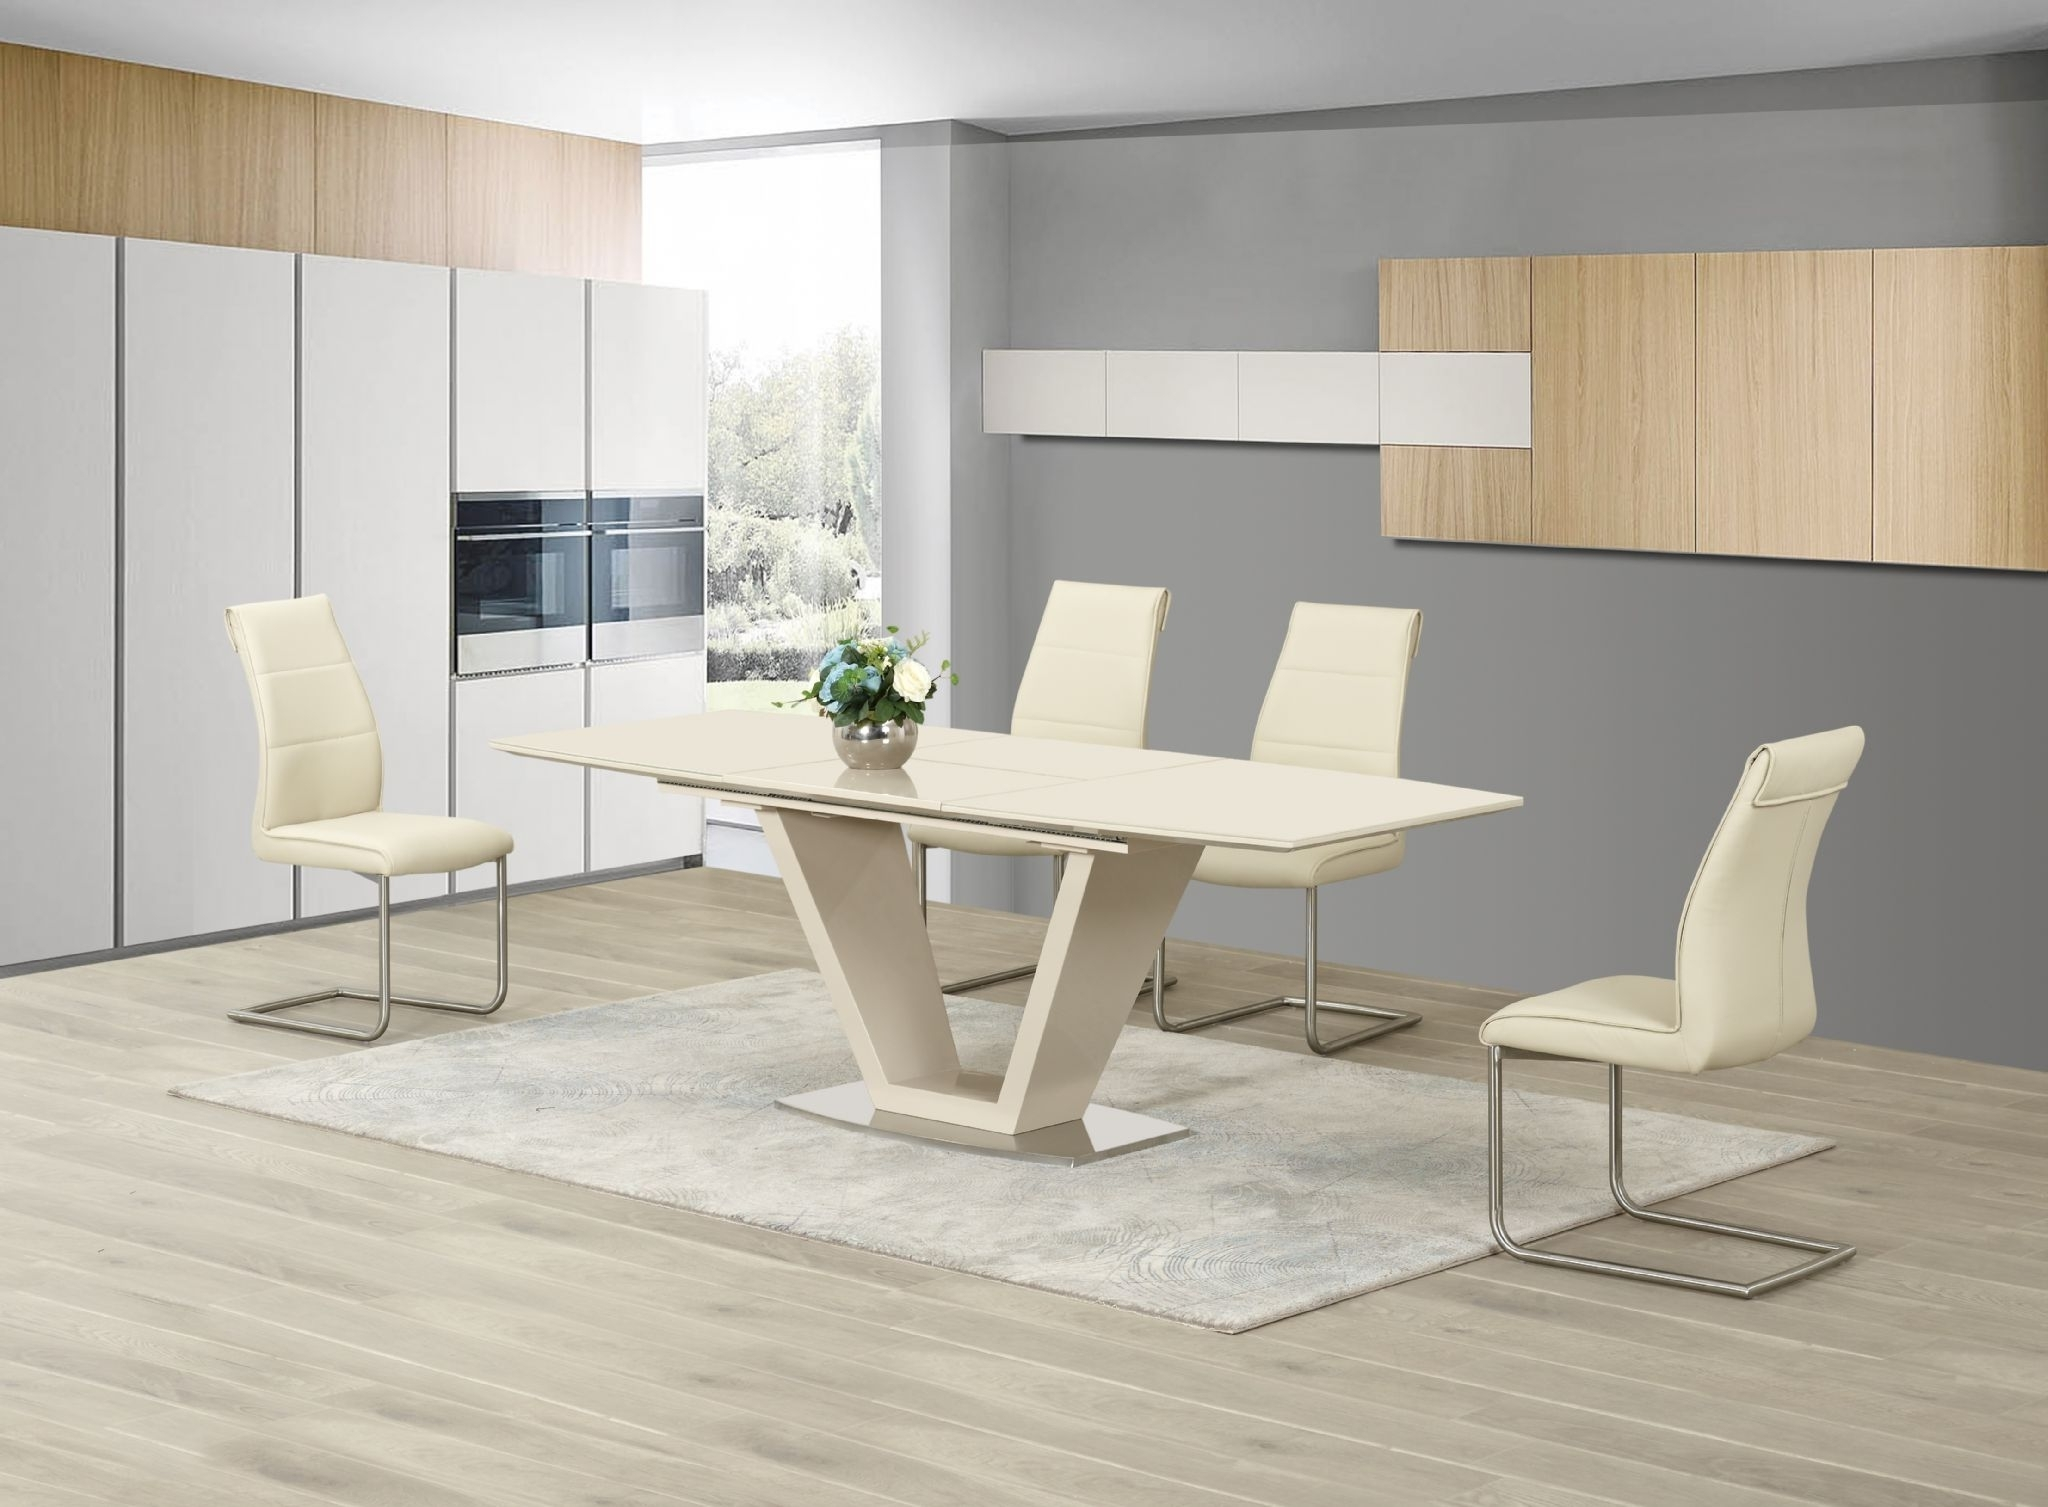 High Gloss Dining Tables in Famous Ga Loriga Cream Gloss Glass Designer Dining Table Extending 160 220